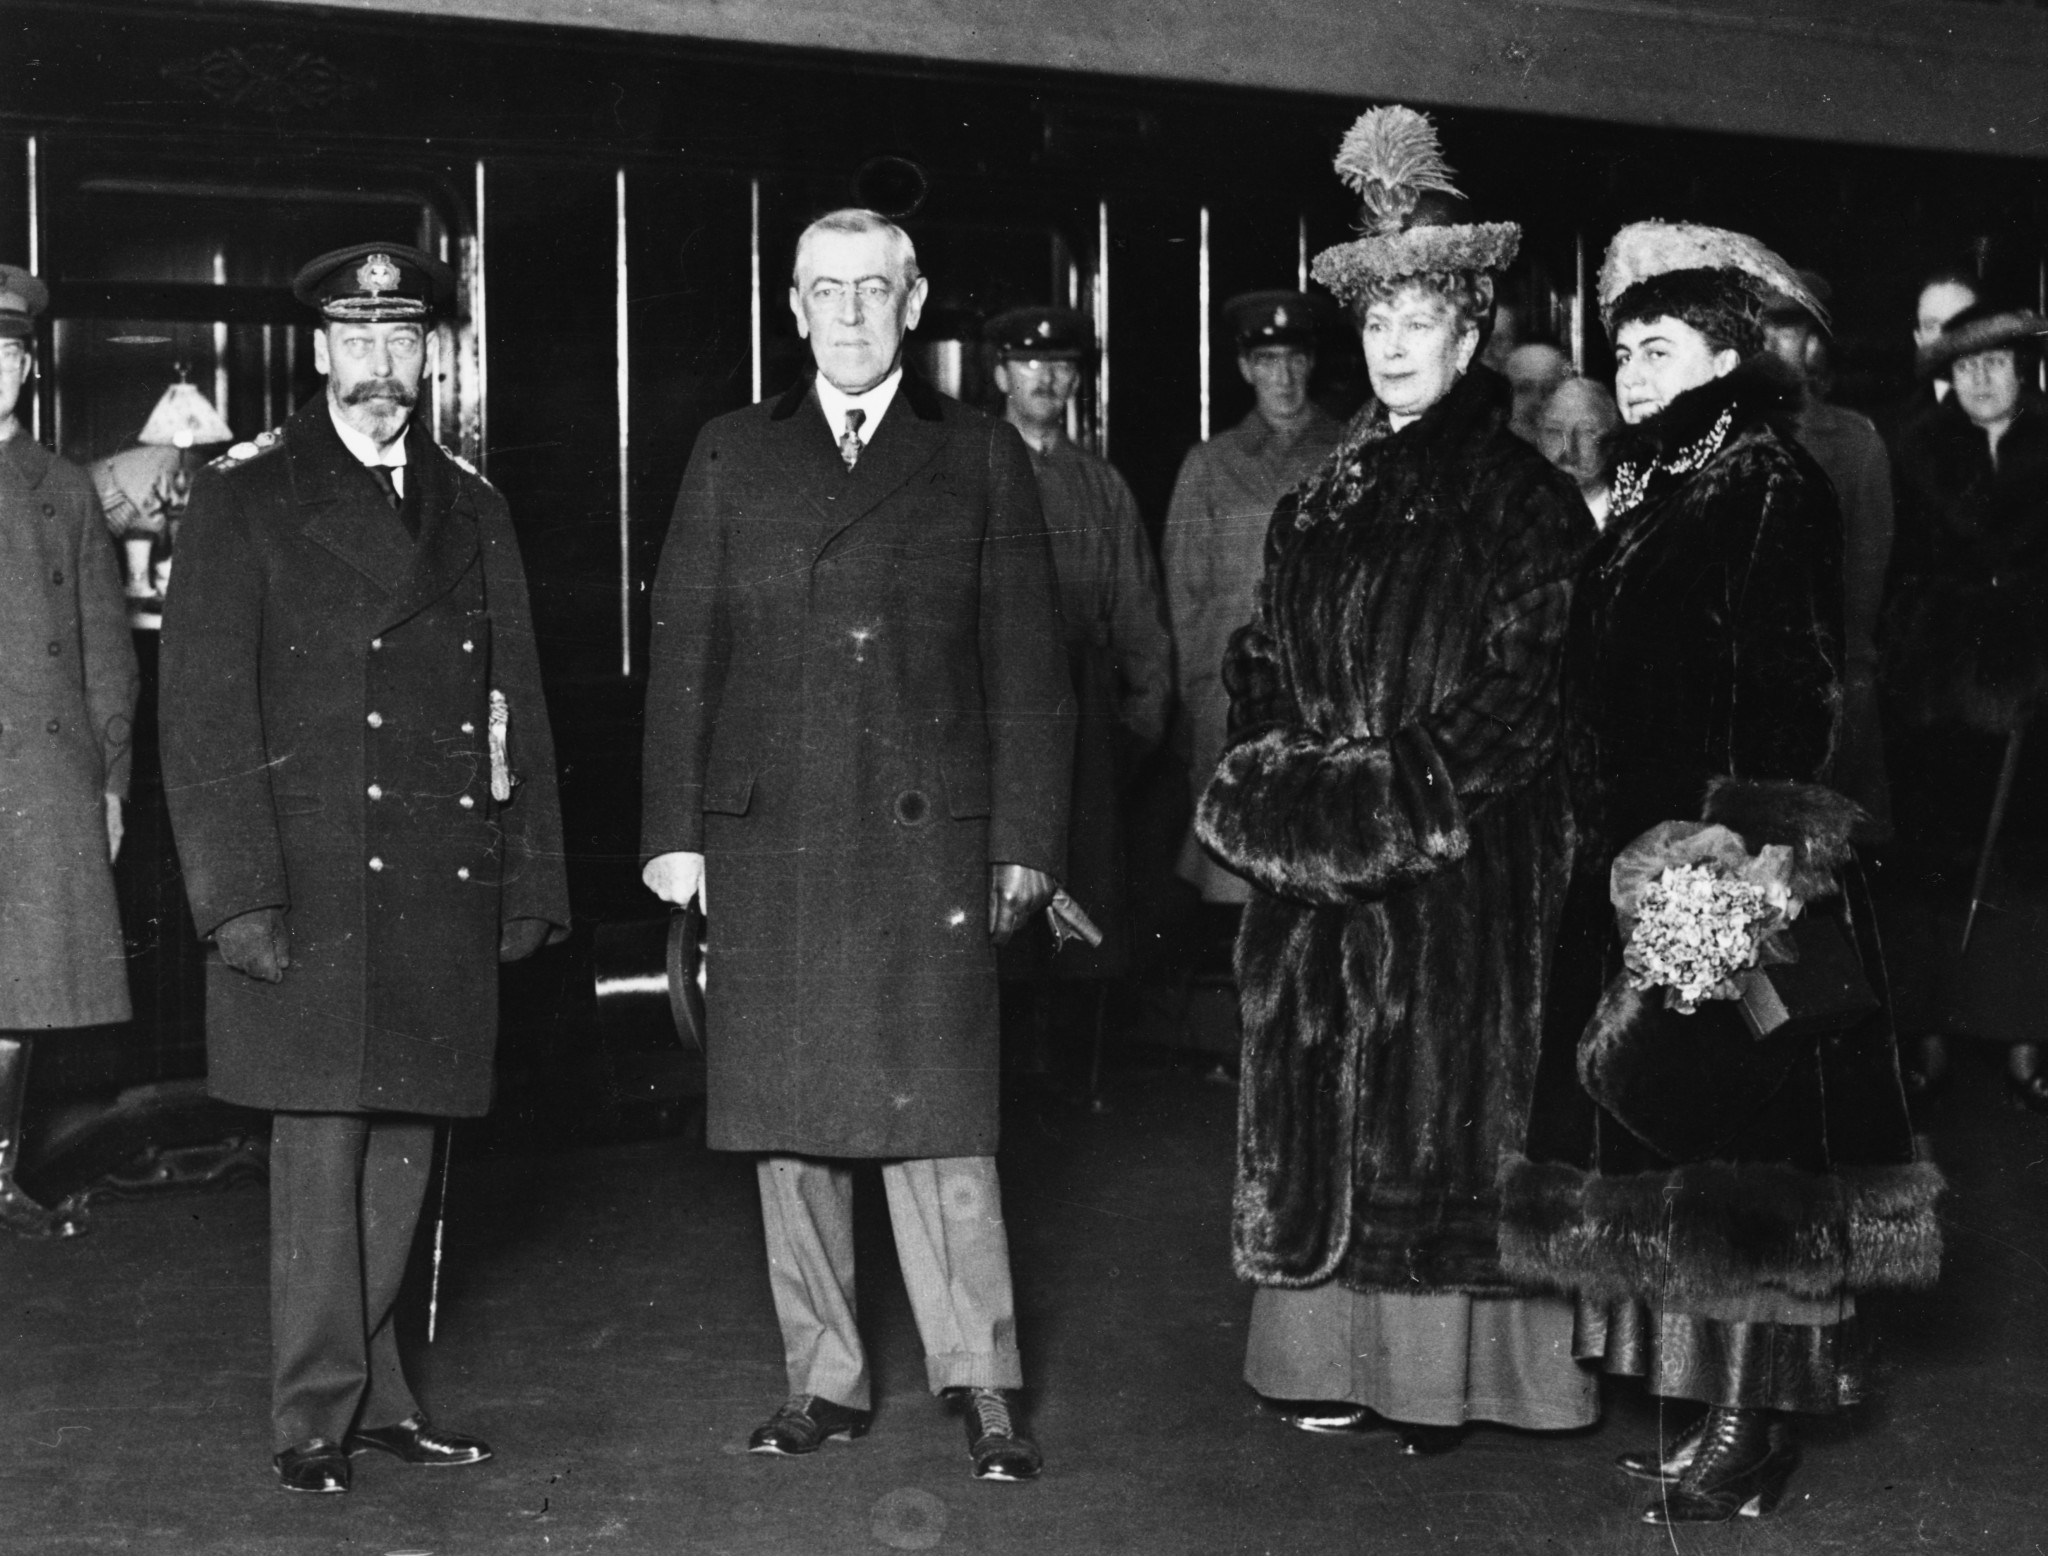 King George V, left, was very involved with the Kings Cup. Here he is alongside US President Woodrow Wilson in 1918 ©Getty Images